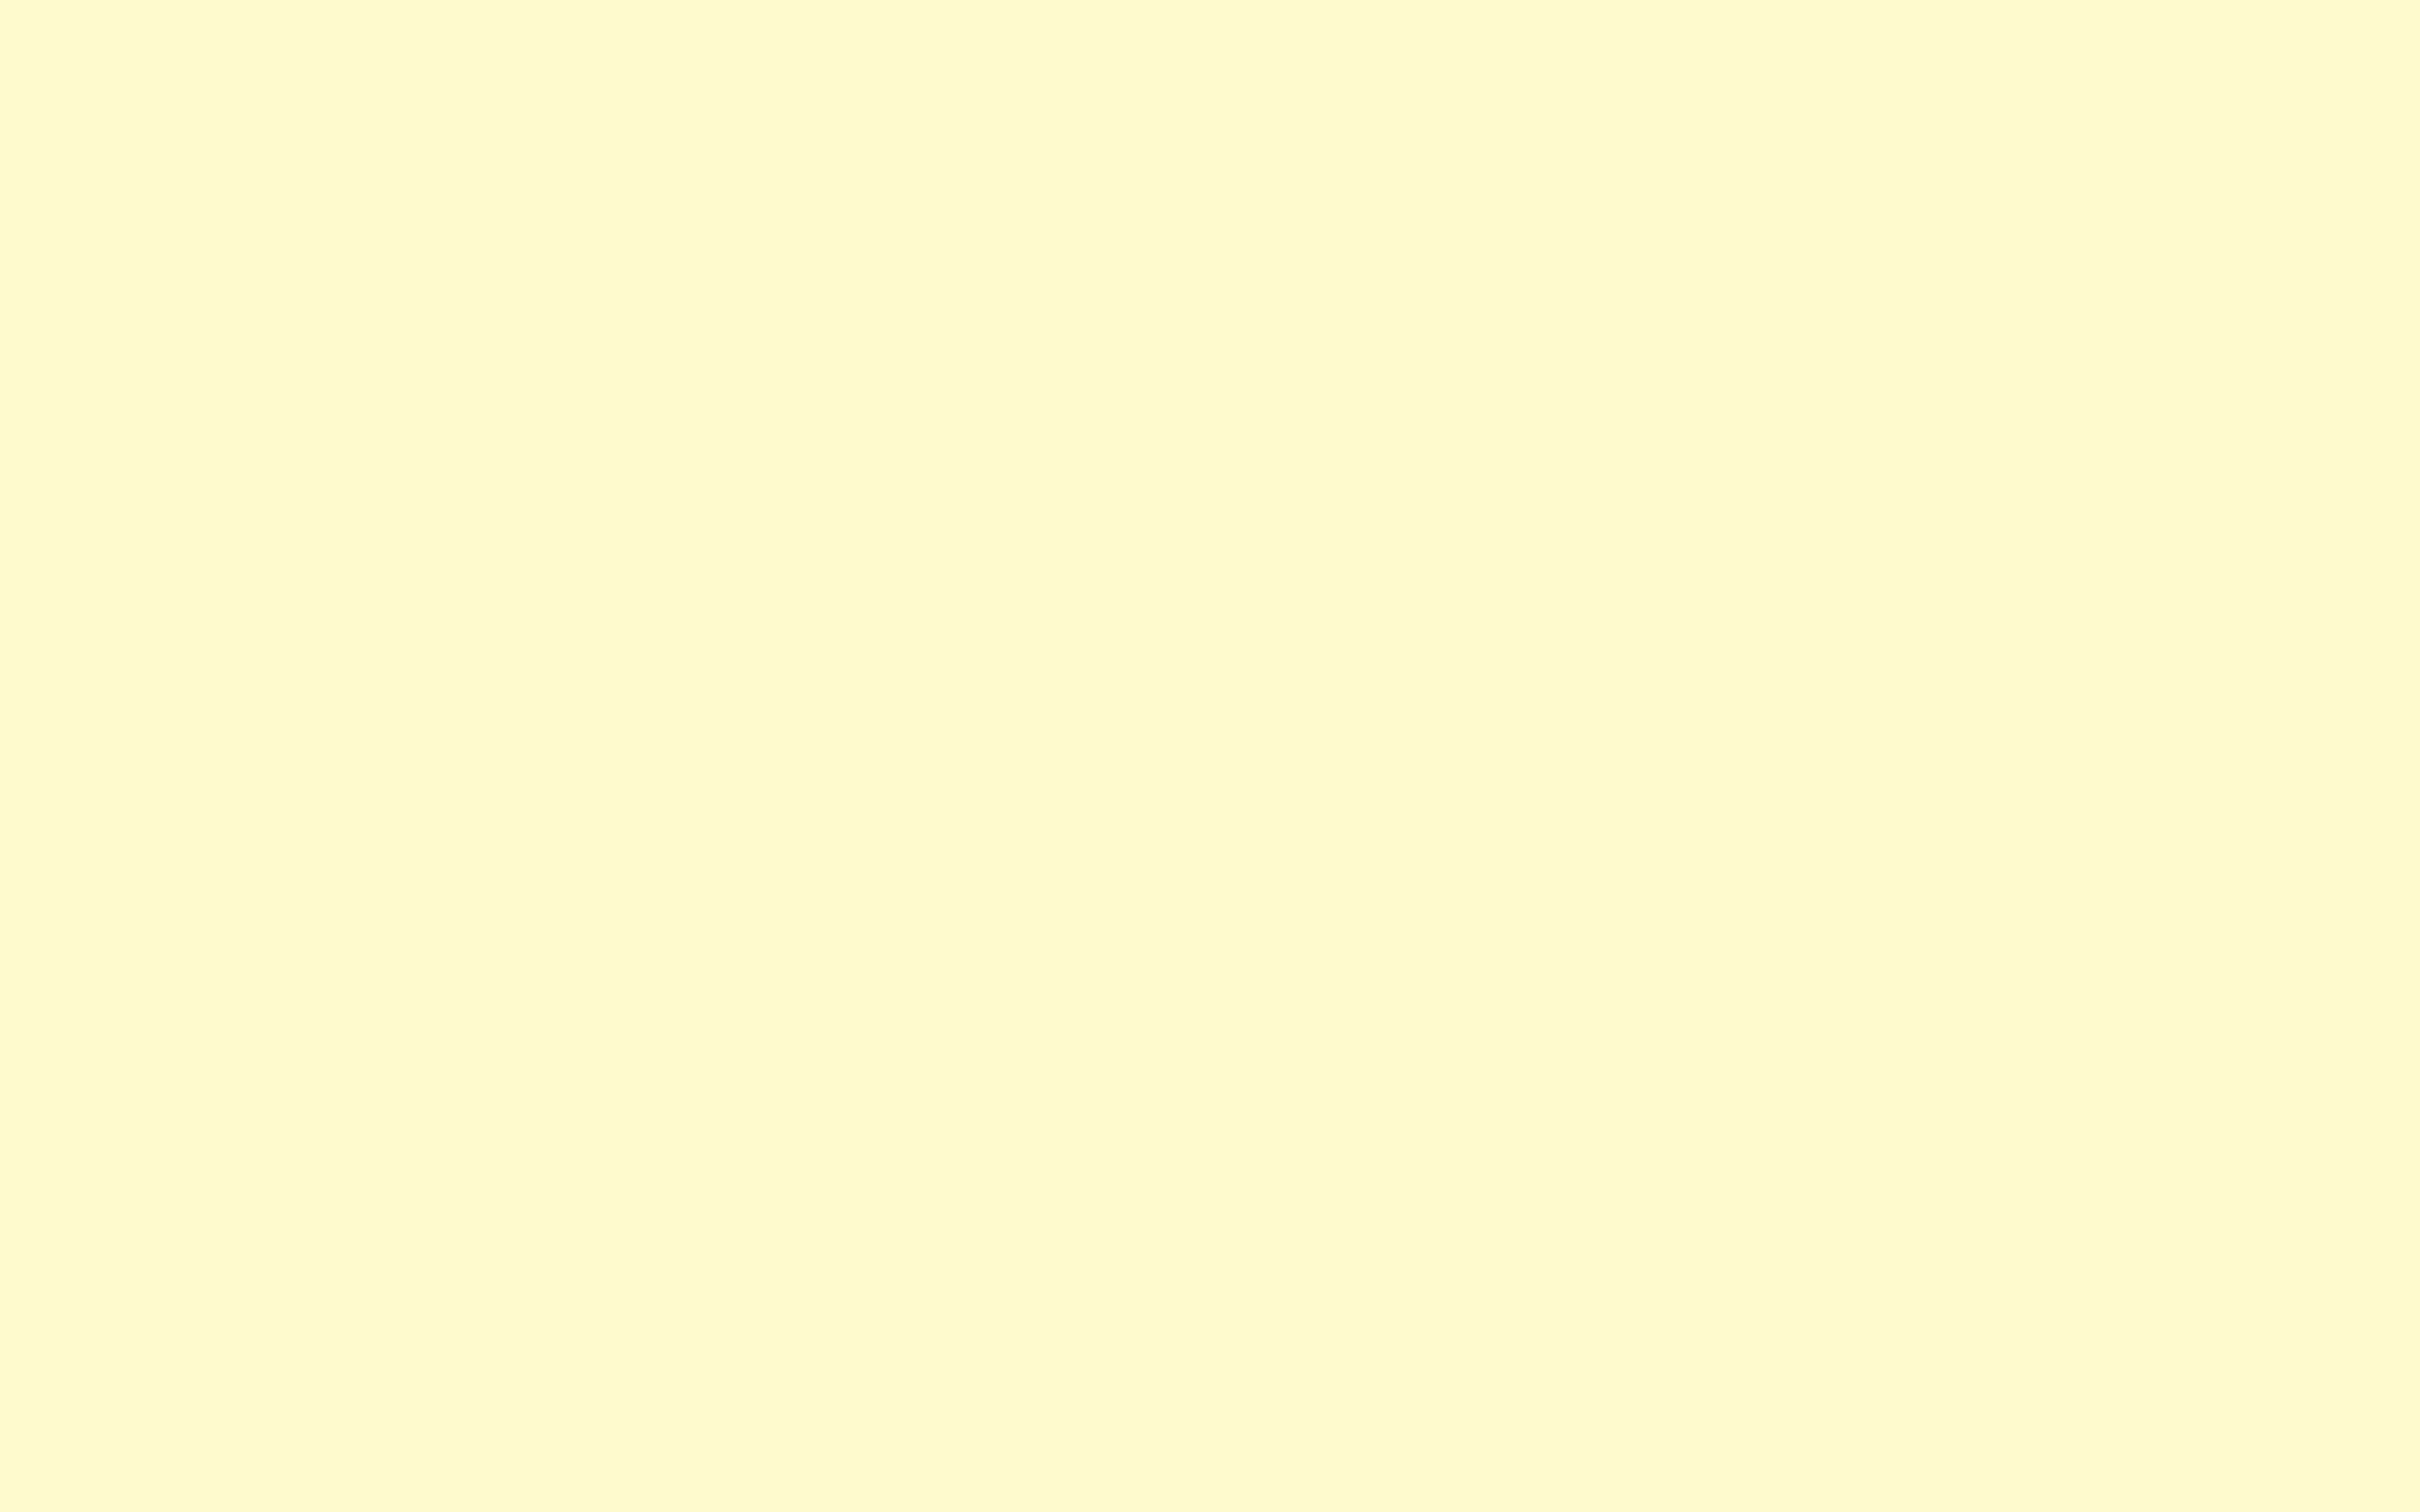 2880x1800 Lemon Chiffon Solid Color Background